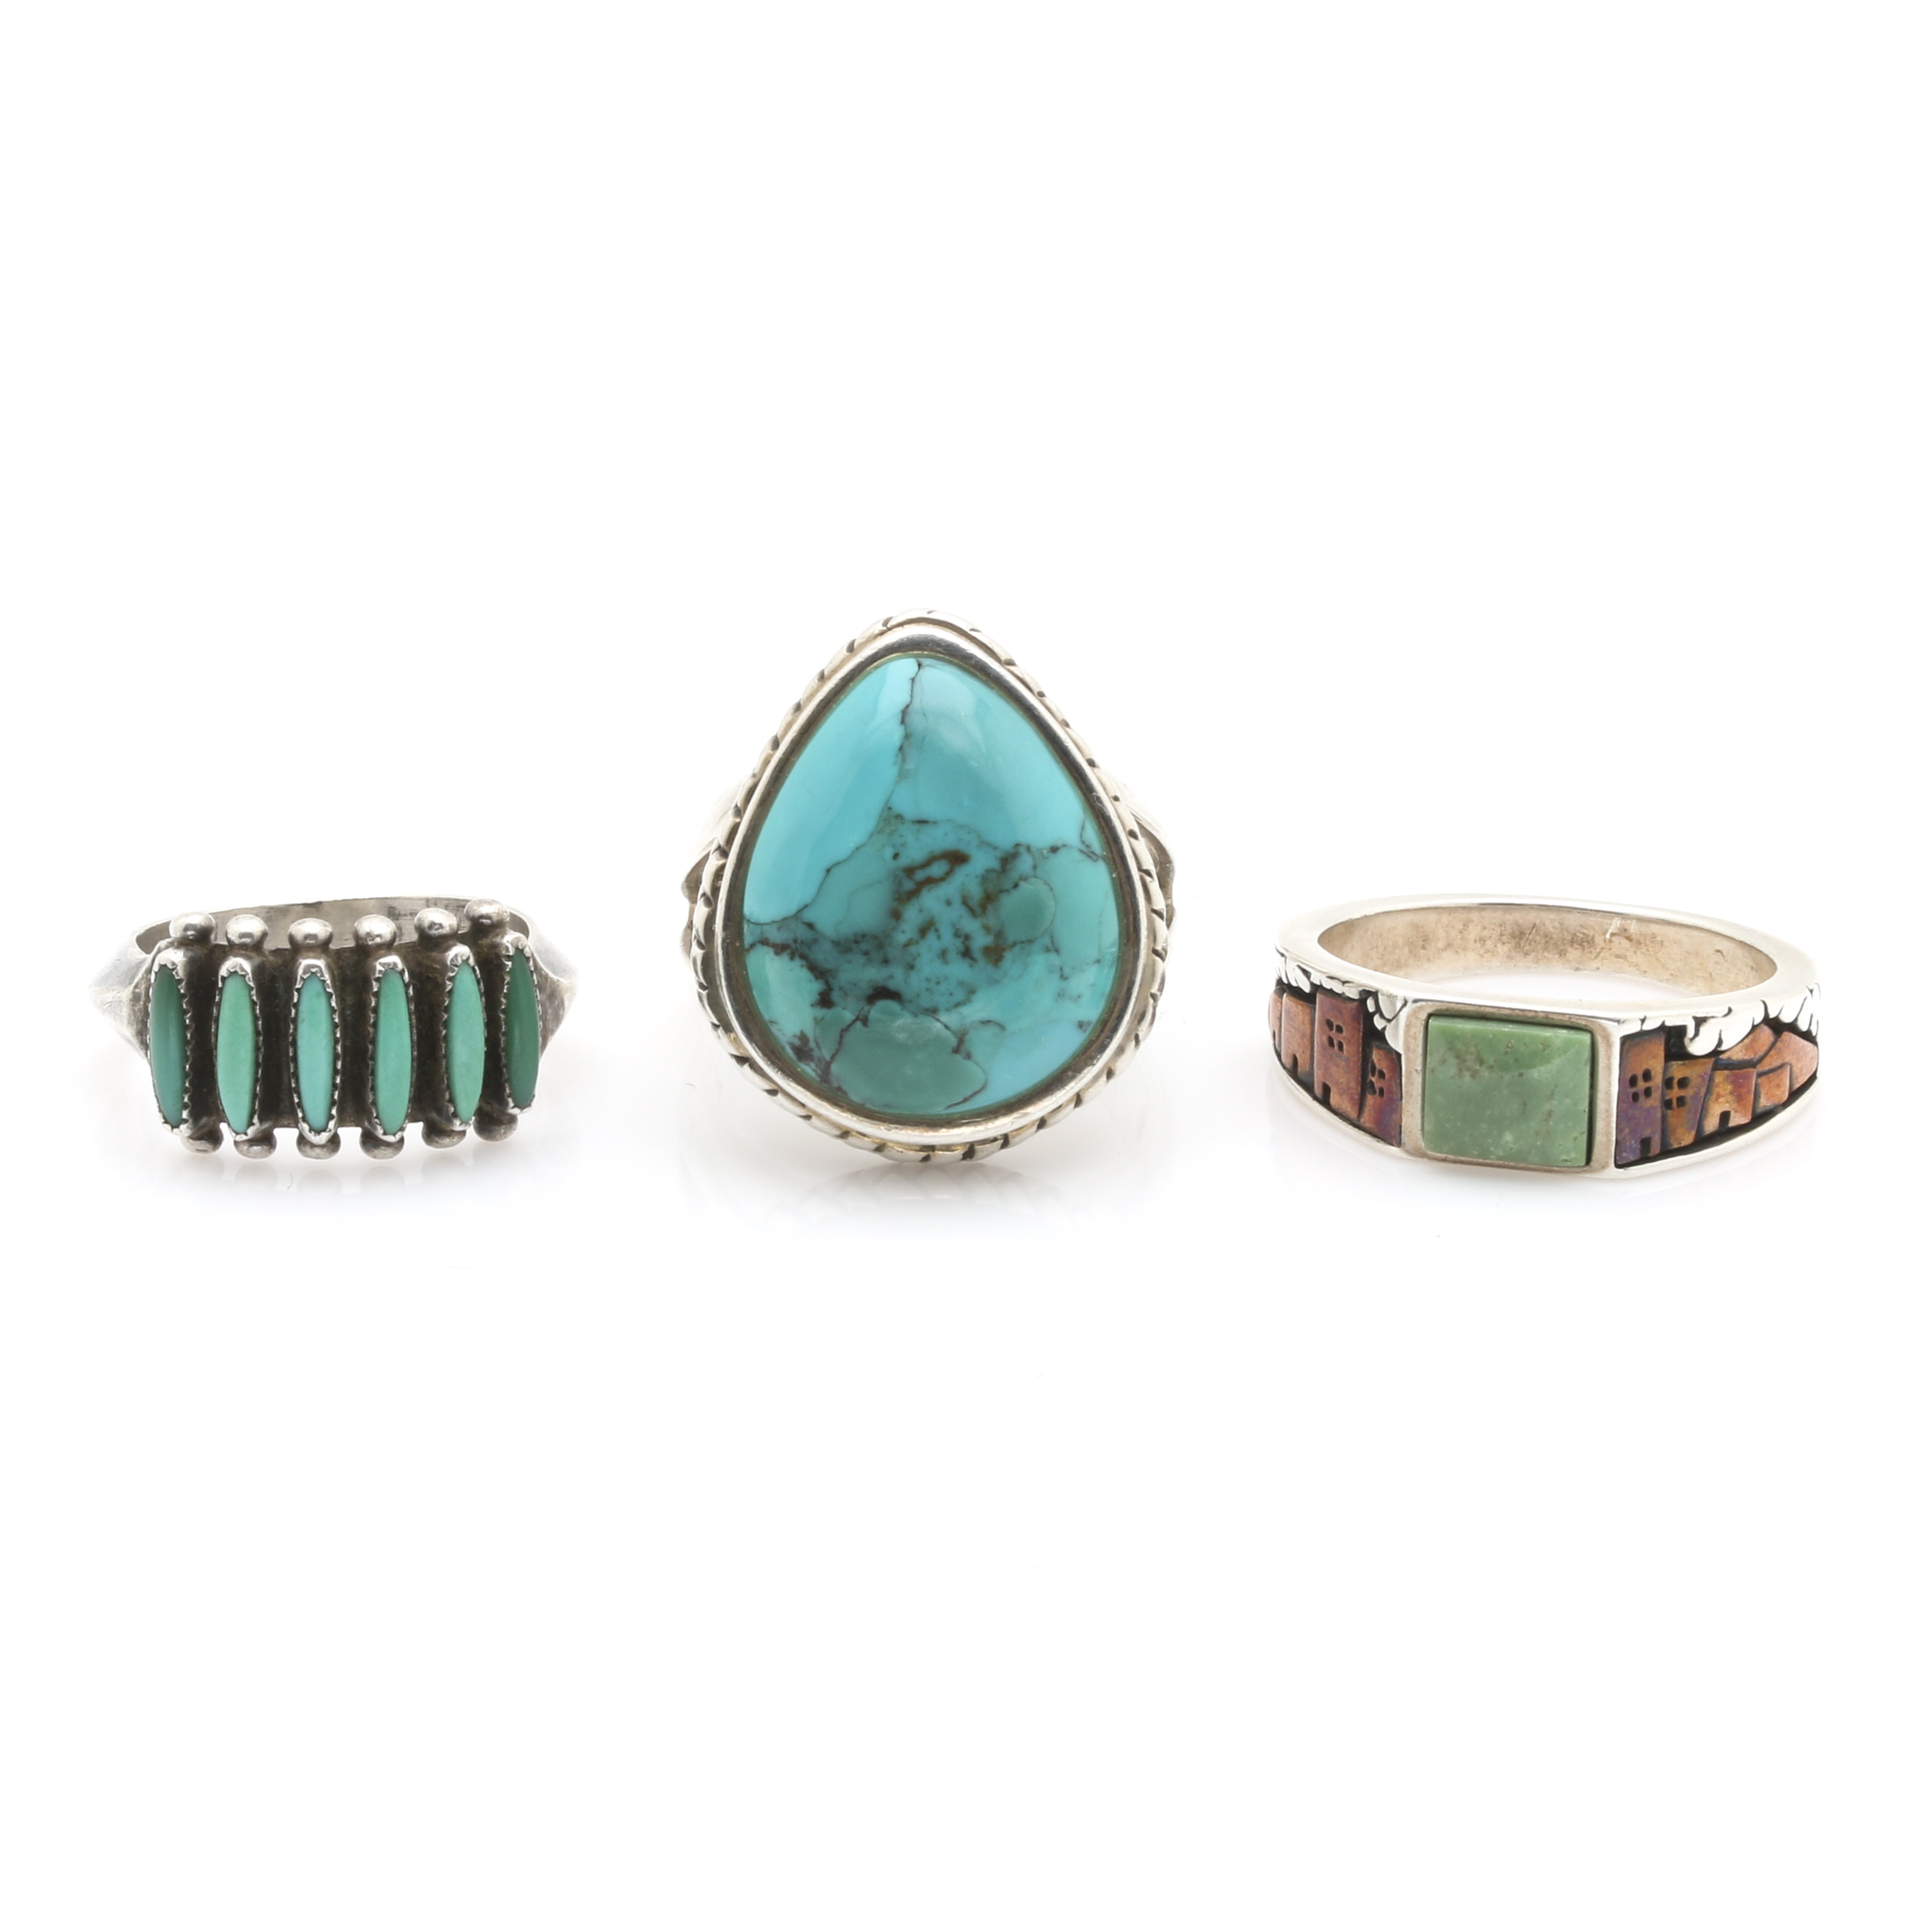 Assortment of Sterling Silver, Copper, and Turquoise Rings